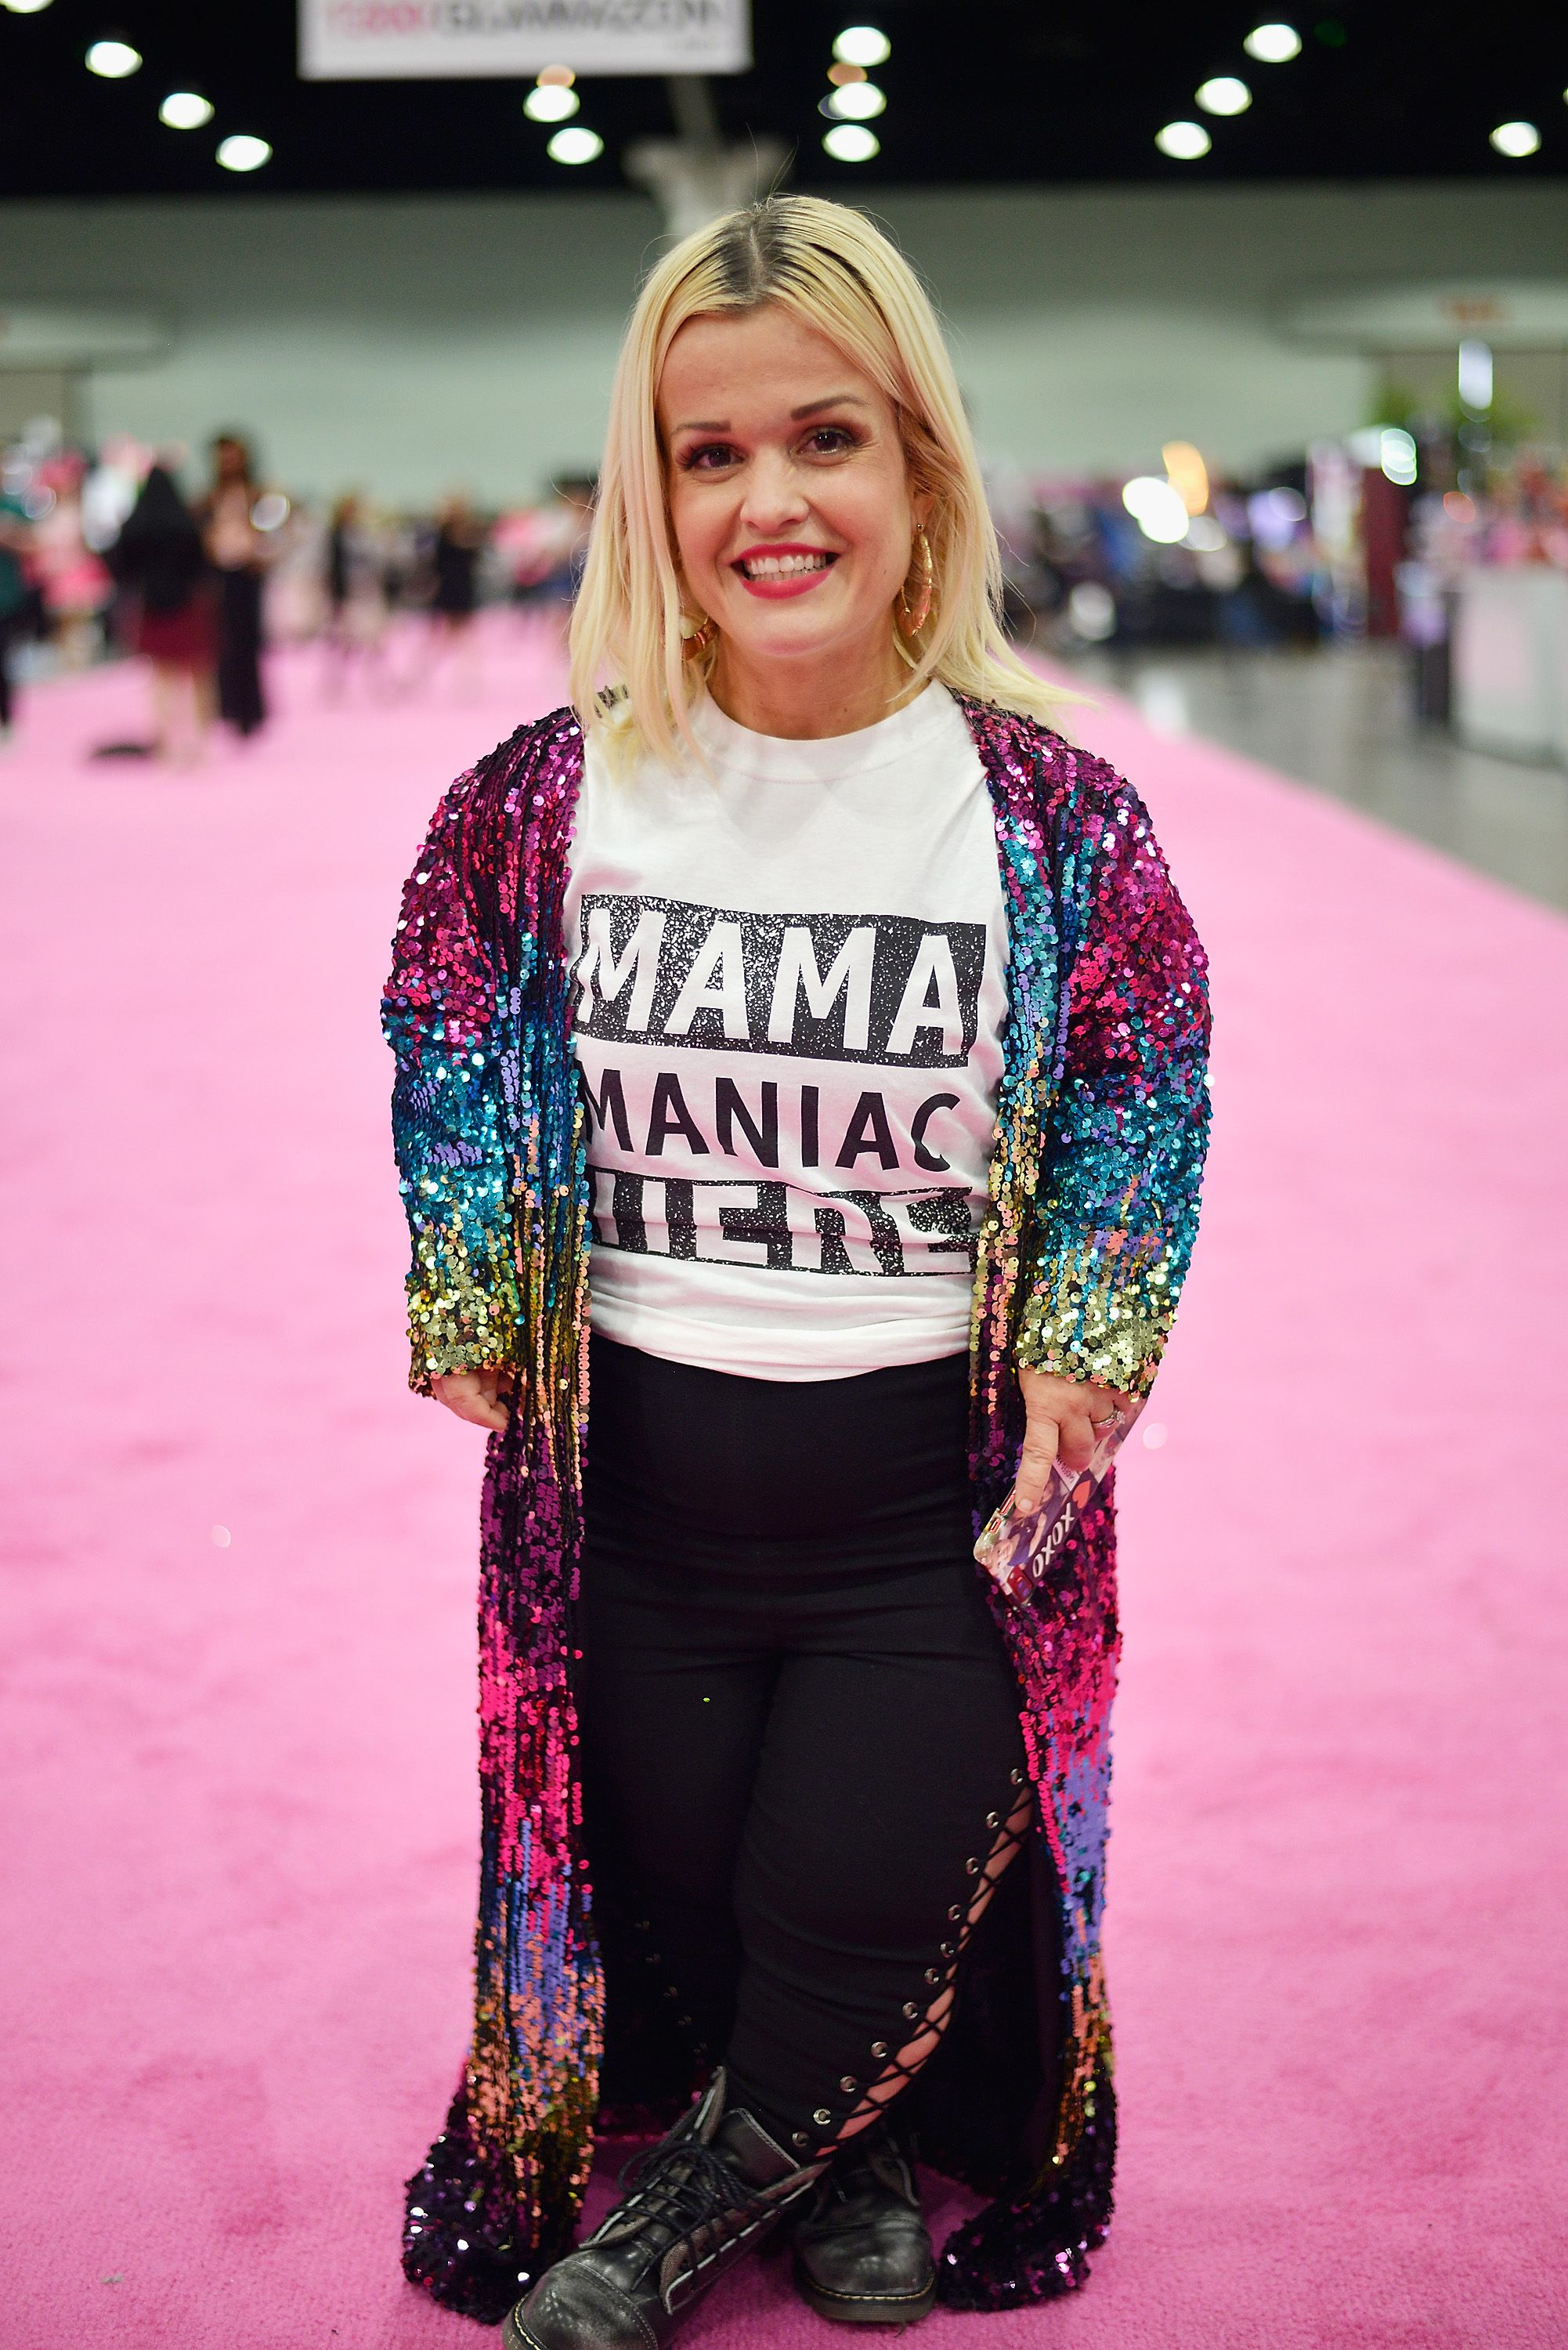 Terra Jole at 4th Annual RuPaul's DragCon at Los Angeles Convention Center on May 13, 2018. | Photo: Getty Images